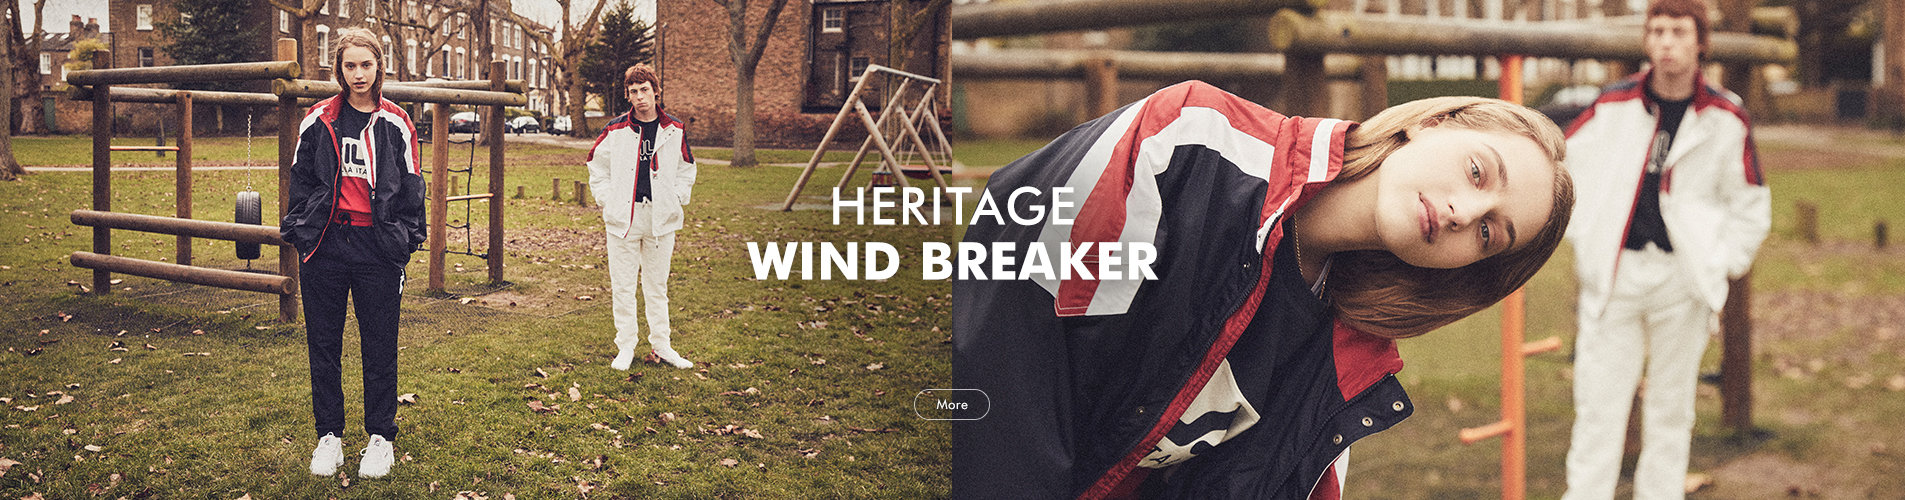 EXCLUSIVE  HERITAGE WIND BREAKER